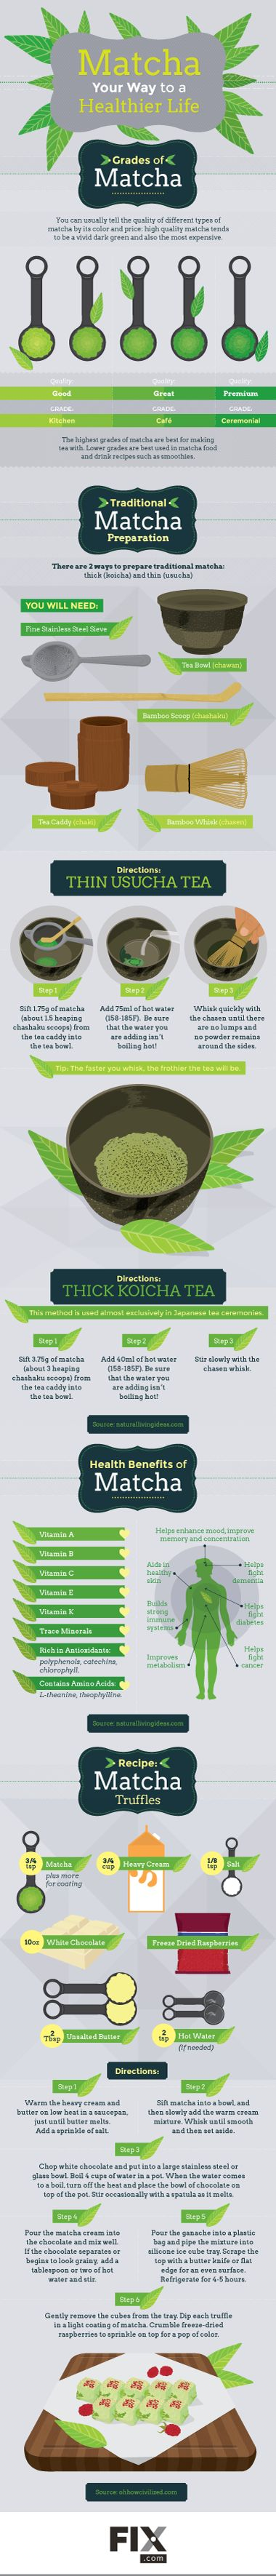 The Benefits of Matcha Green Tea | Fix.com